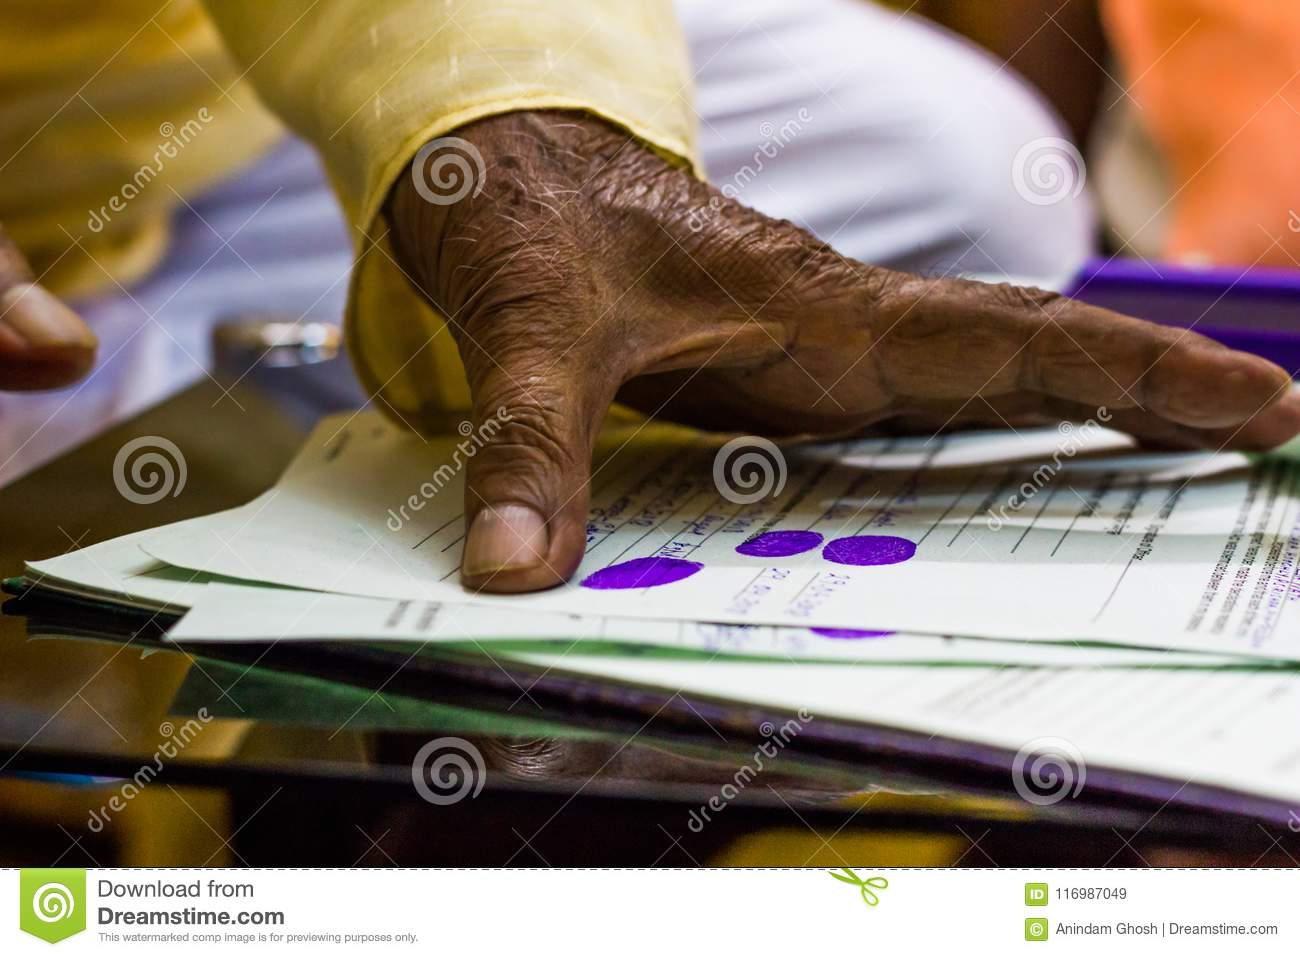 An old man`s hand giving thumb impression on important legal documents.